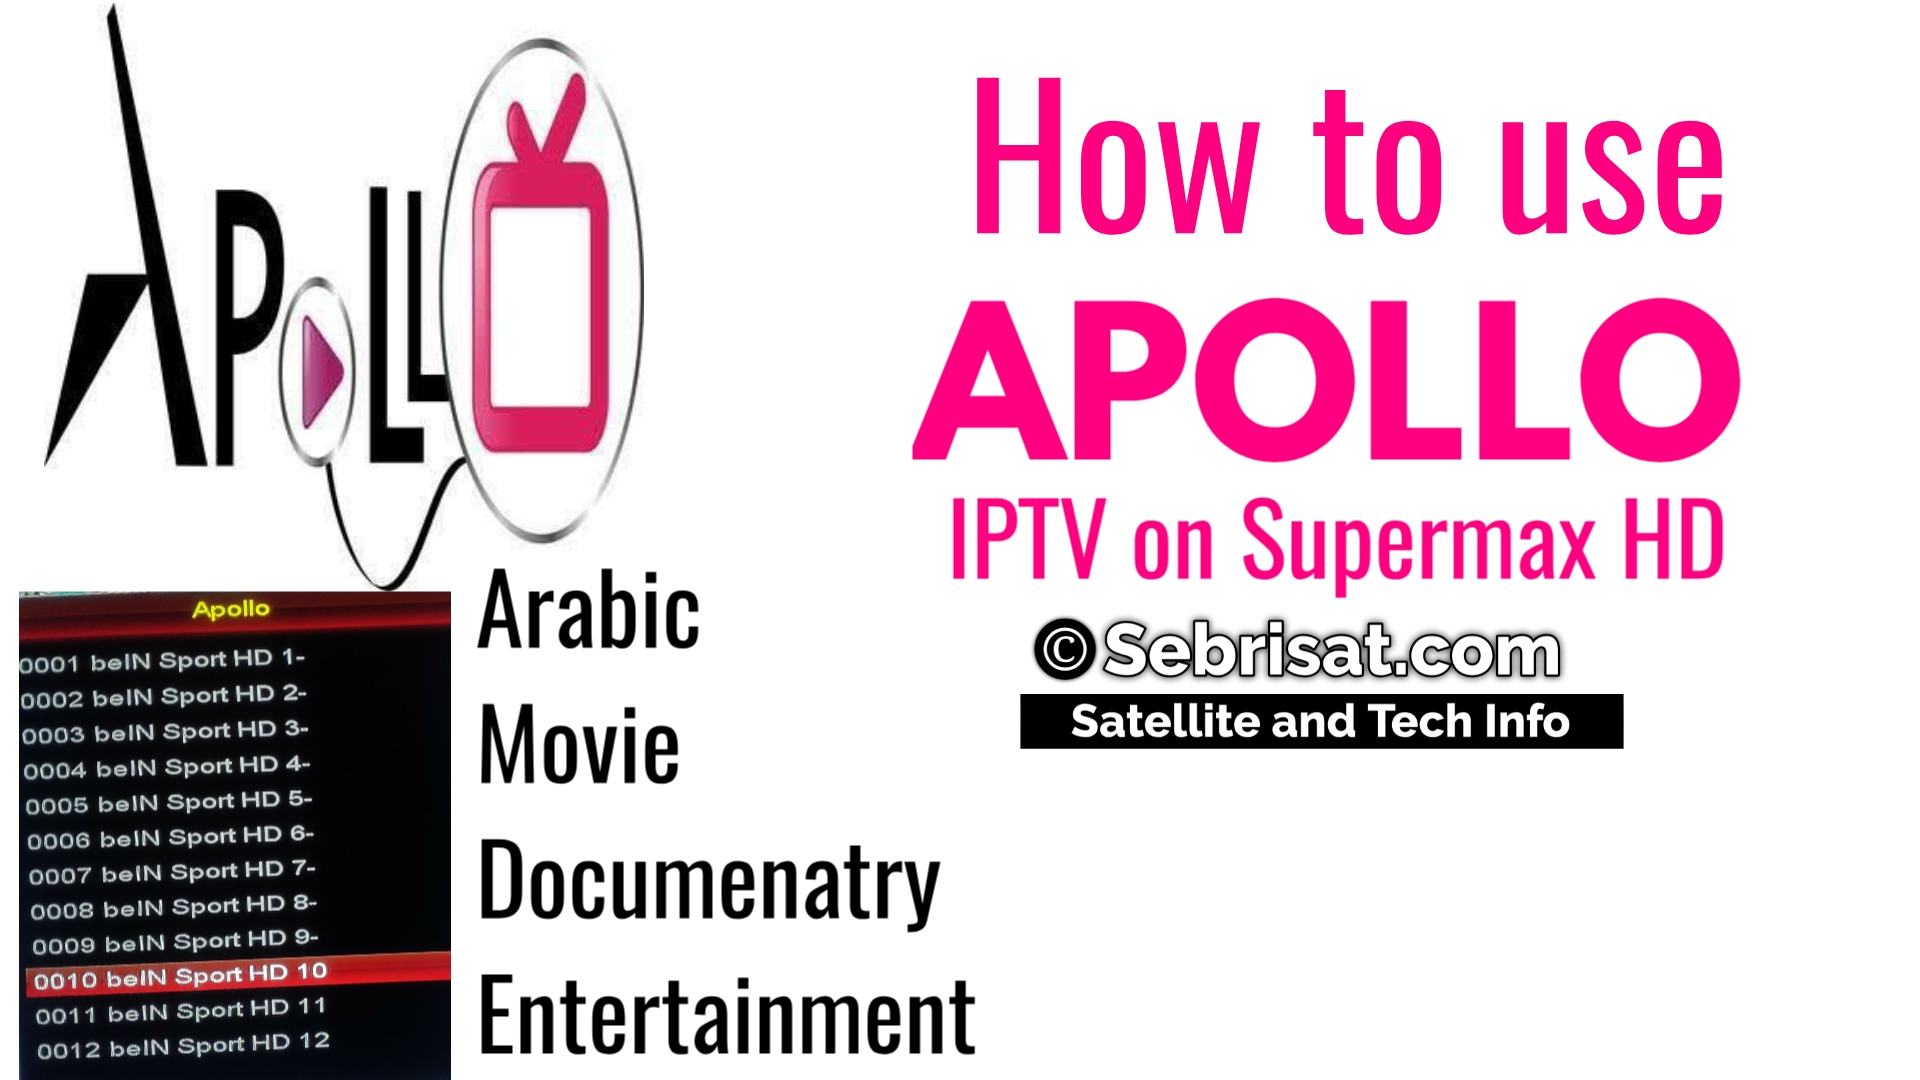 How to use IPTV ON SUPERMAX | Sebrisat Satellite and Tech center